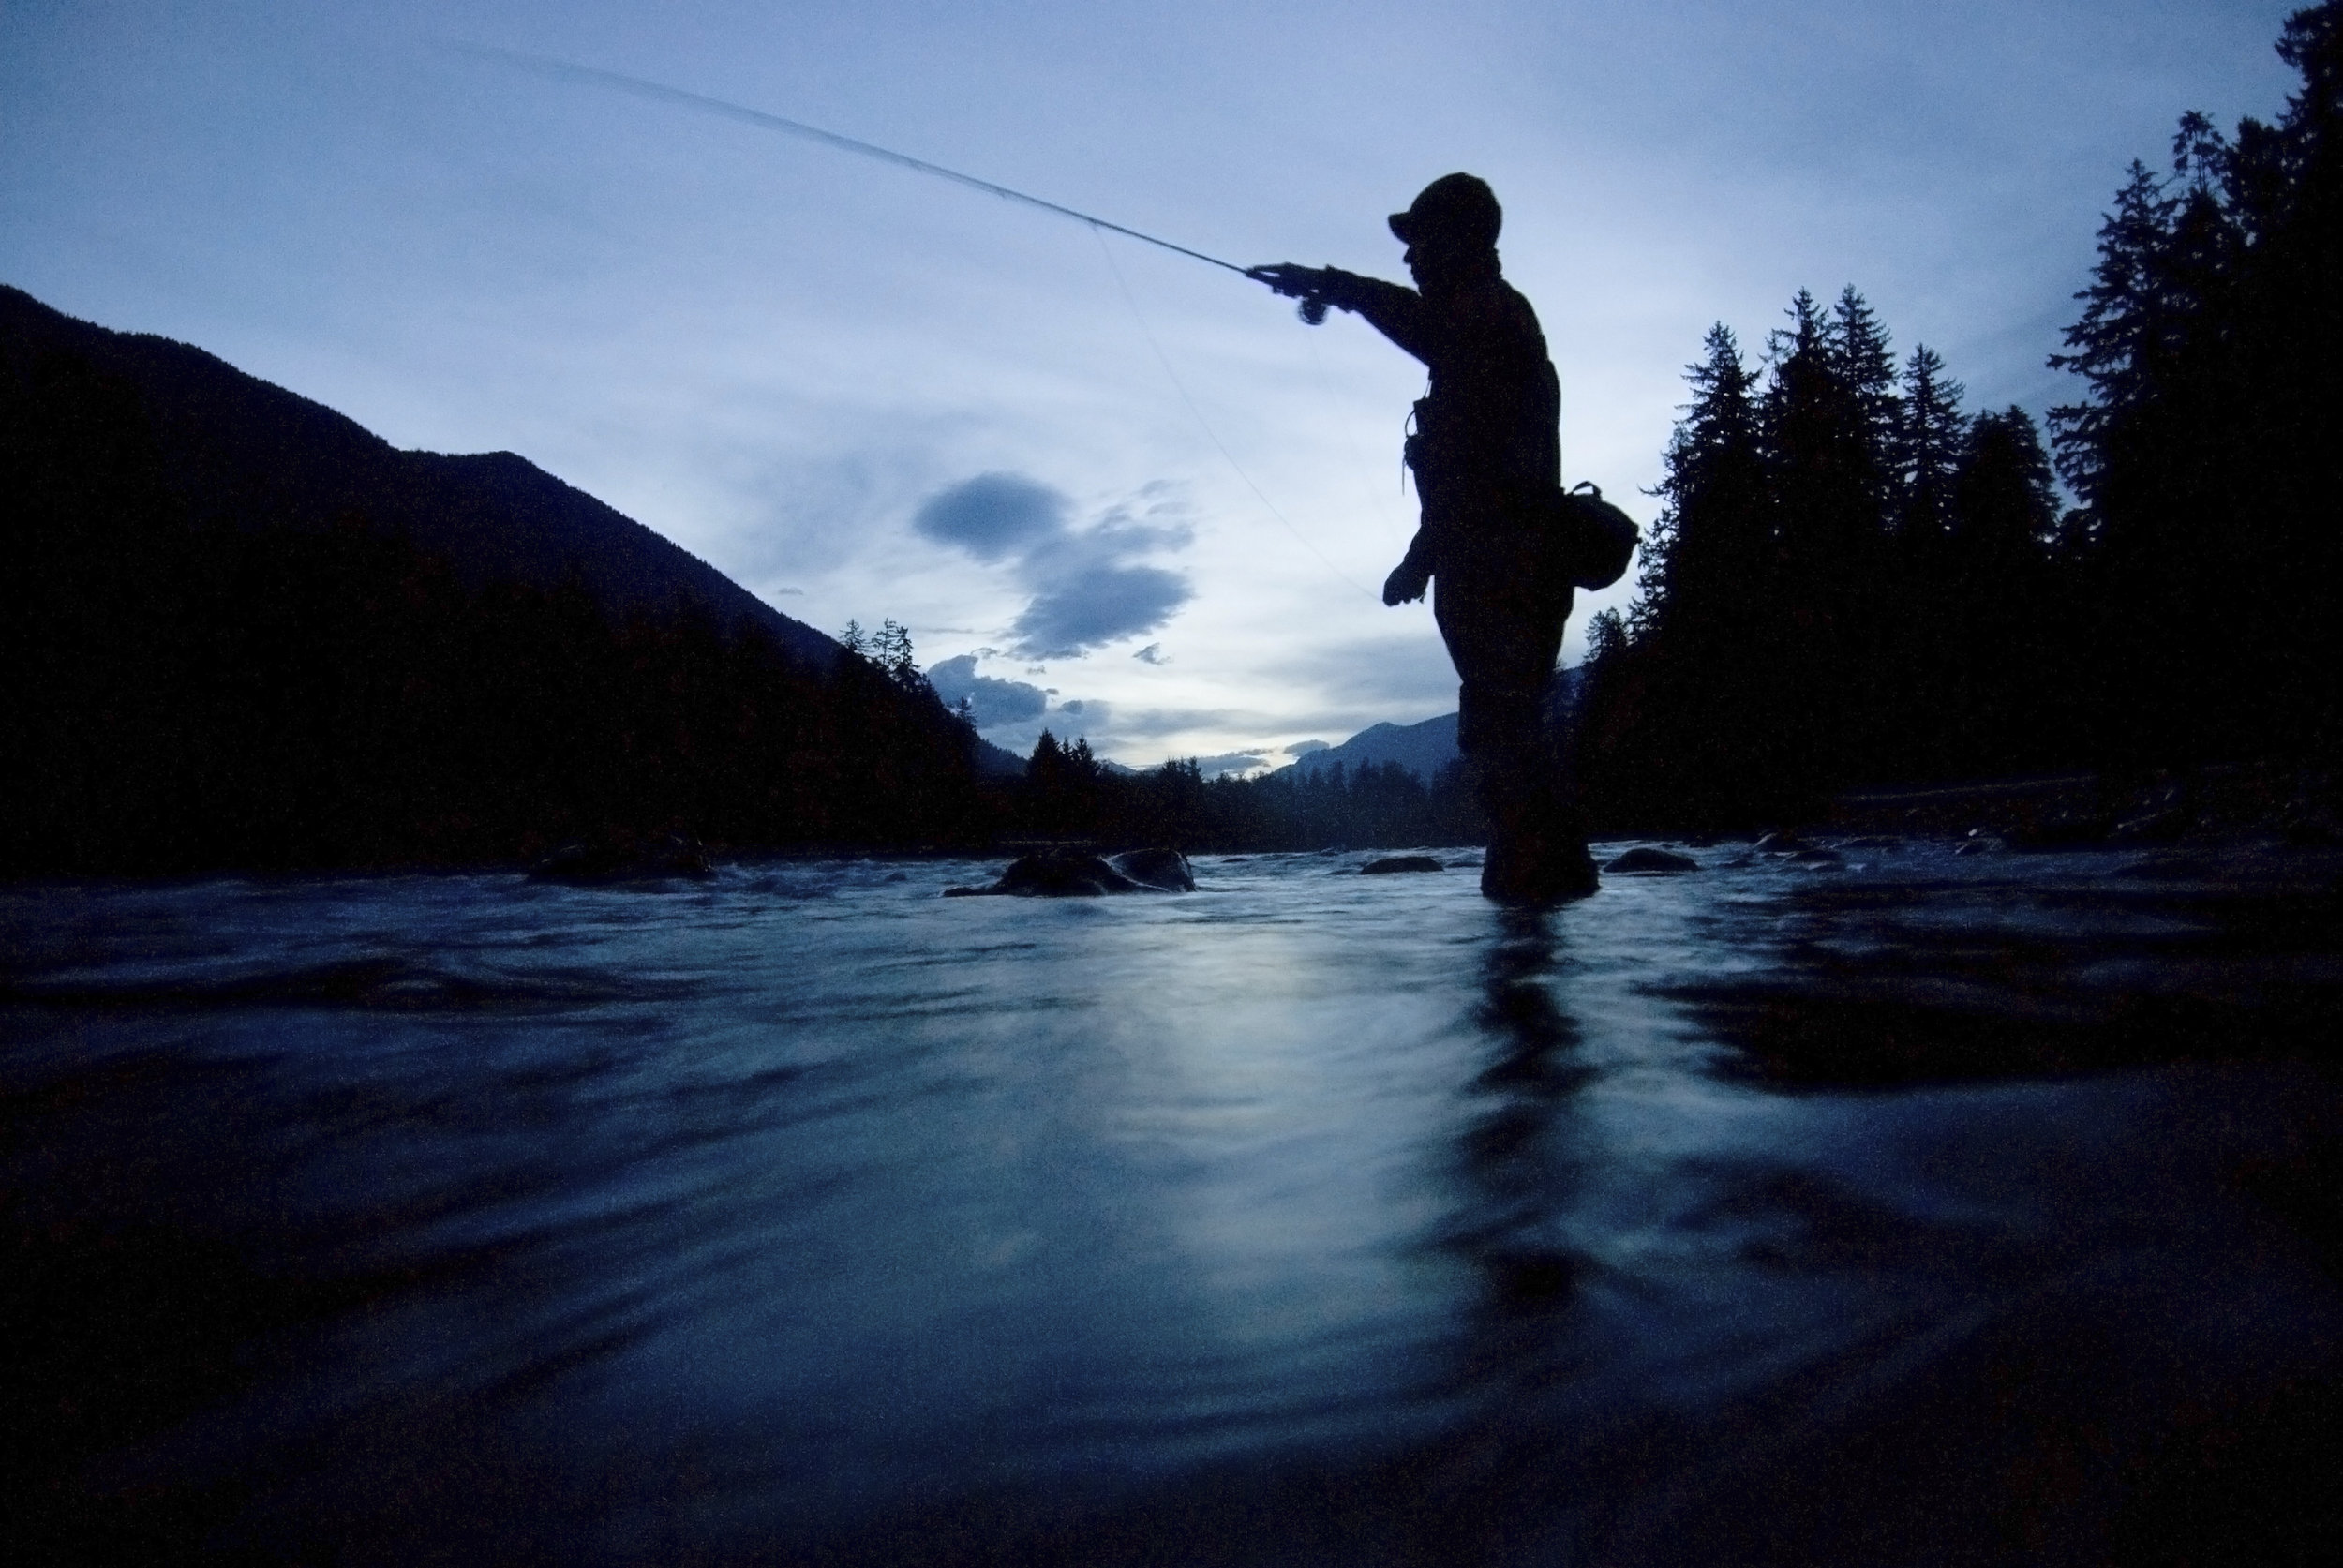 Fishing guide Shannon Carroll flyfishing at dawn for steelhead on the Hoh River in the Olympic Peninsula. Photo by Bridget Besaw.